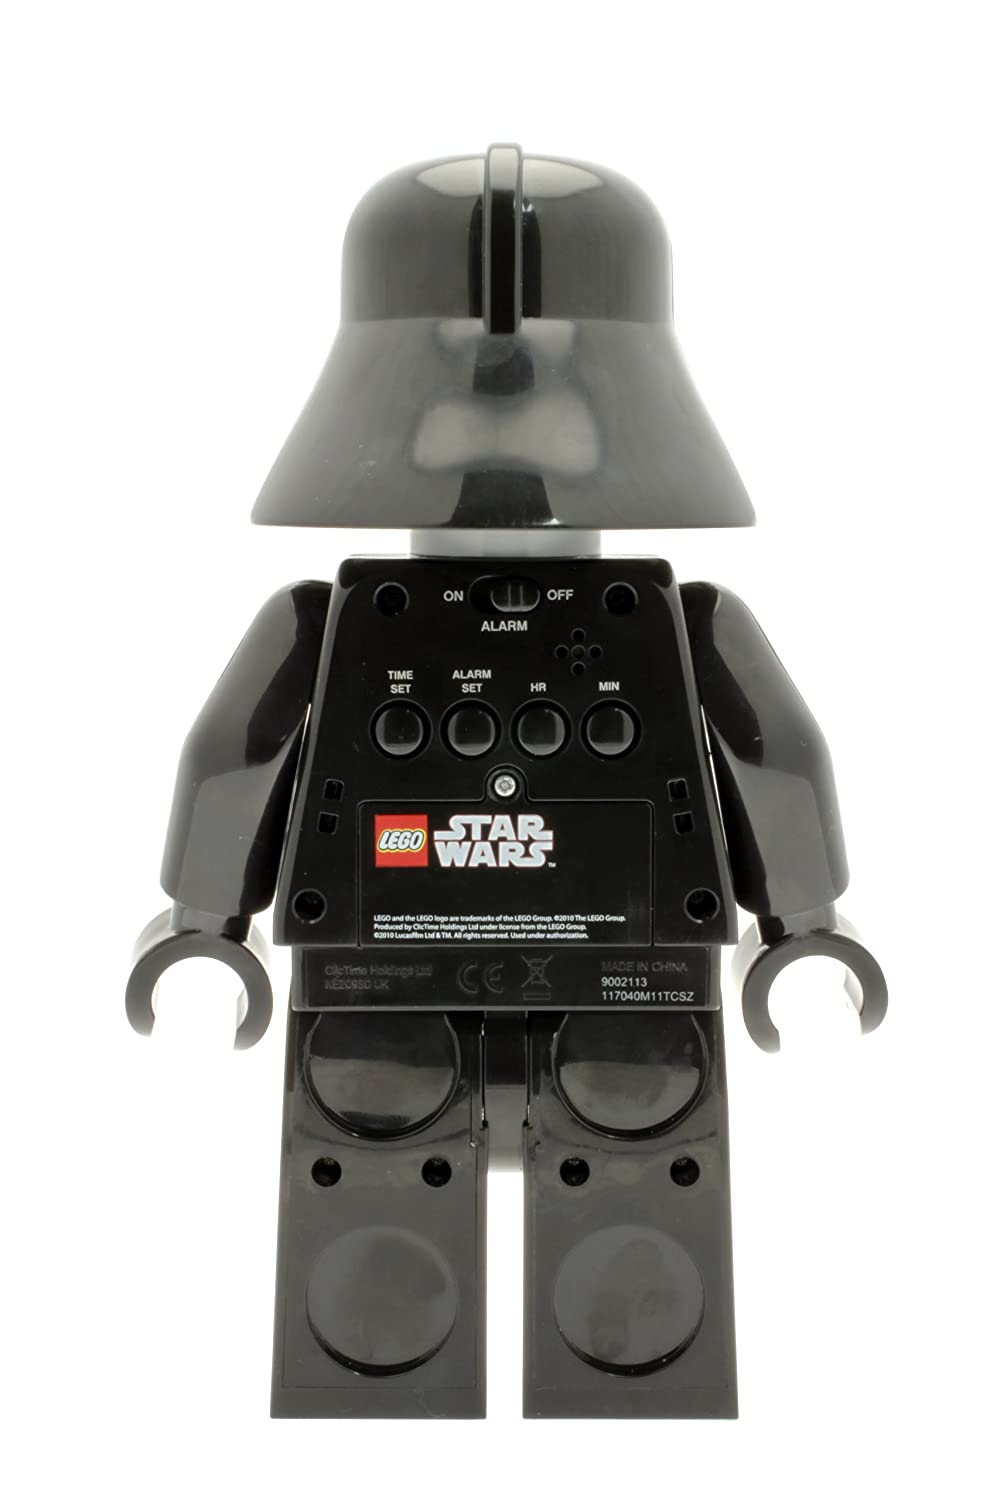 lego star wars alarm clock manual